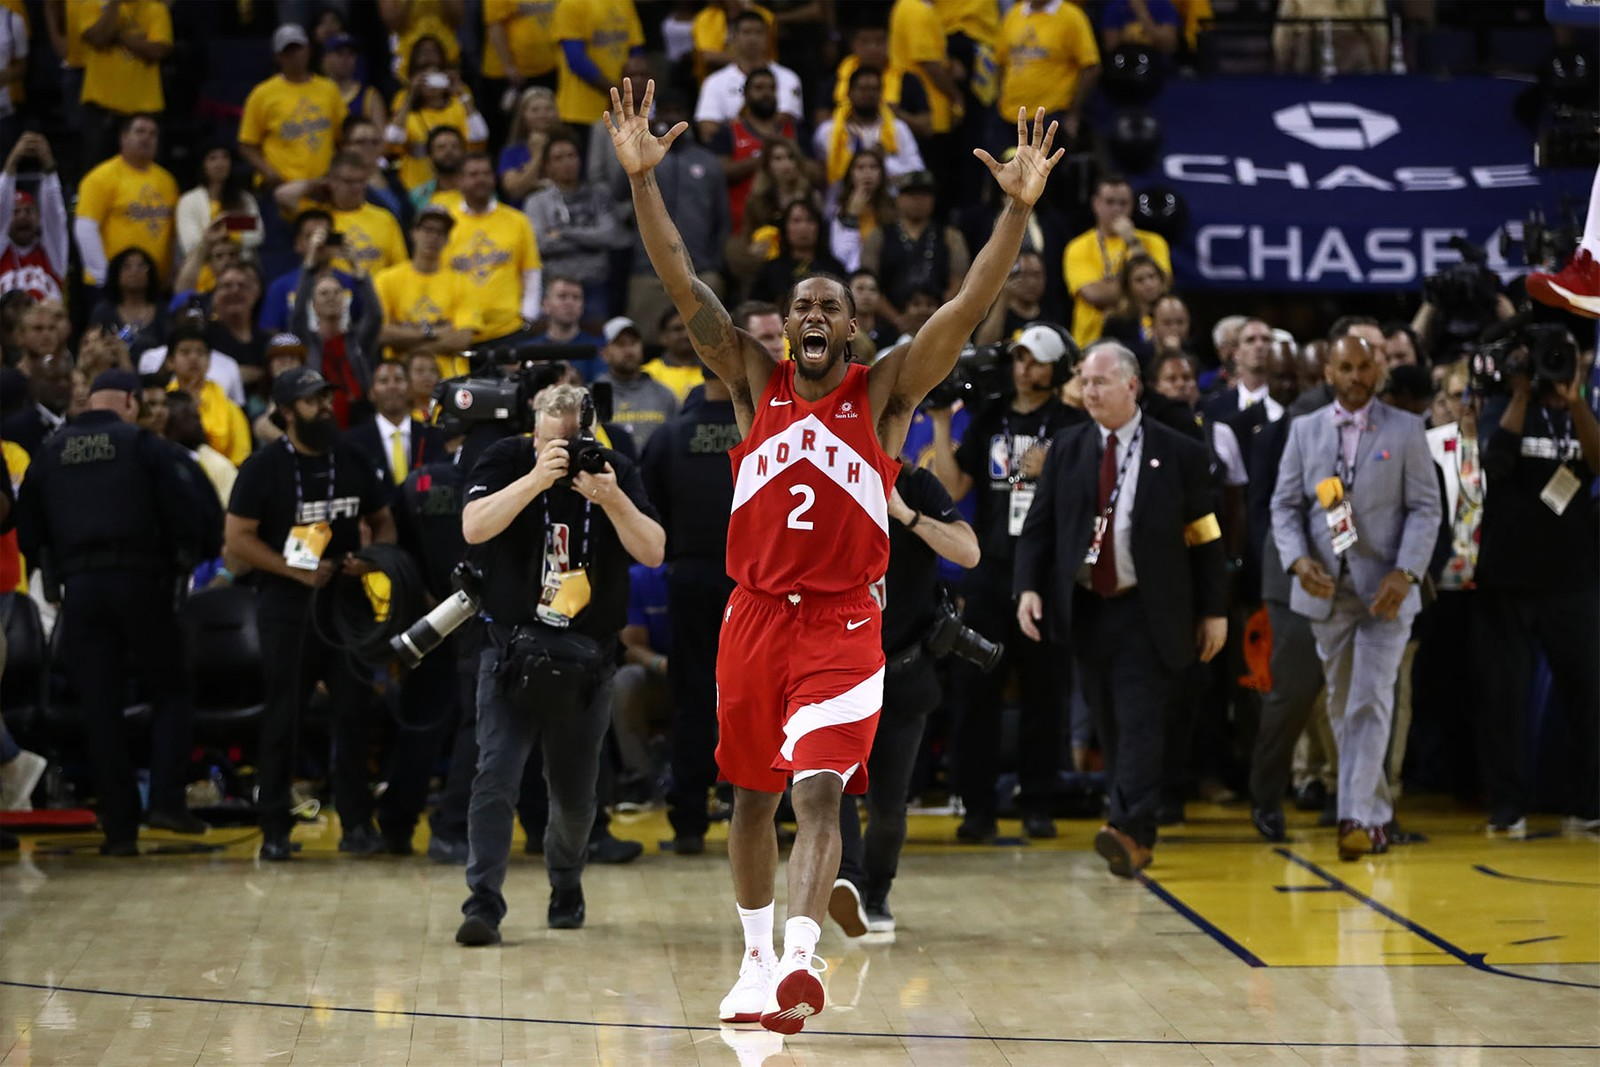 TORONTO RAPTORS KEVIN DURANT NBA GOLDEN STATE WARRIORS NBA FINALS CHANEL SAINT LAURENT LOUIS VUITTON PRADA DIOR BURBERRY CARTIER ROLEX YVES SAINT LAURENT HERMES GUCCI NIKE VIRGIL ABLOH OFF-WHITE MCA CHICAGO MUSEUM OF CONTEMPORARY ART FREITAG 1LDK COMMON PROJECTS WORKSOUT CITY GUIDE 10 CORSO COMO ATMOS SEOUL SPECTATOR DUFFEL CENTRE AJOBYAJO FINK LABEL AJO STUDIO MAGAZZINI 1LDK SEOUL USDC TASTE AND SENSE SEOUL CITY GUIDE SLOW STEADY CLUB AECA WHITE NIKE NIKE BLAZER NIKE CORTEZ NETFLIX STRANGER THINGS NIKE AIR TAILWIND 79